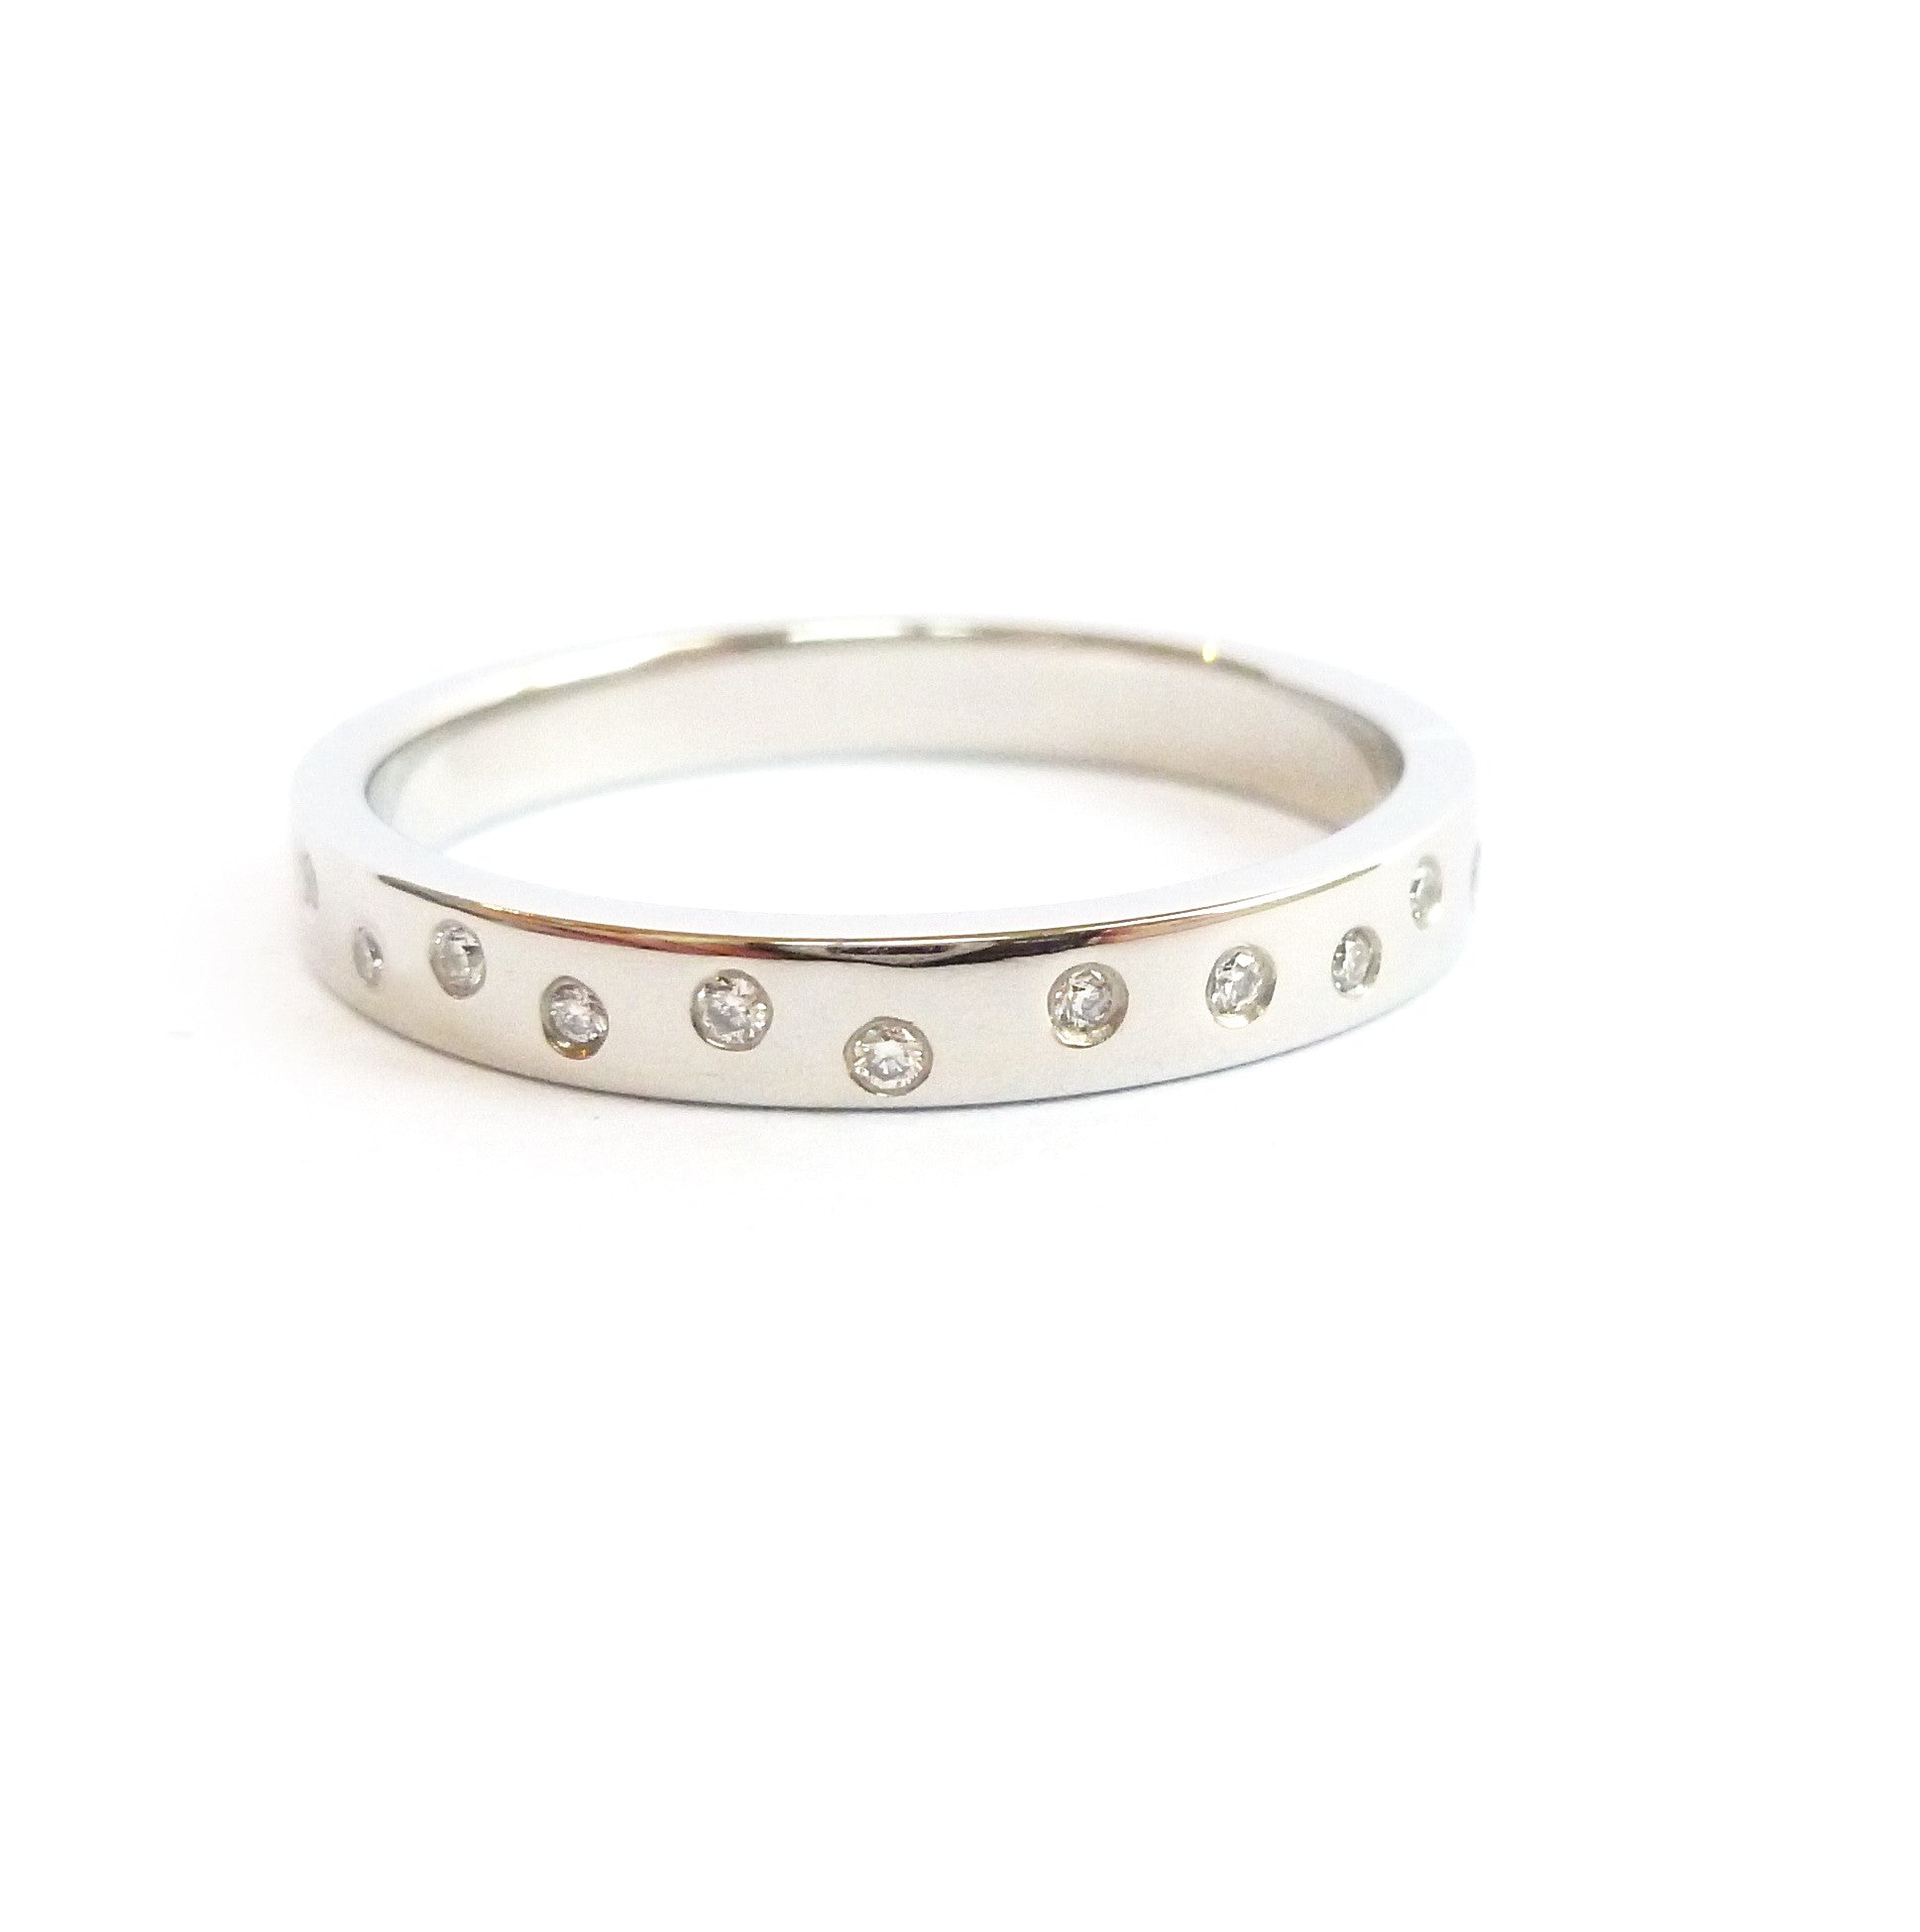 Palladium and Diamond ring pdr03